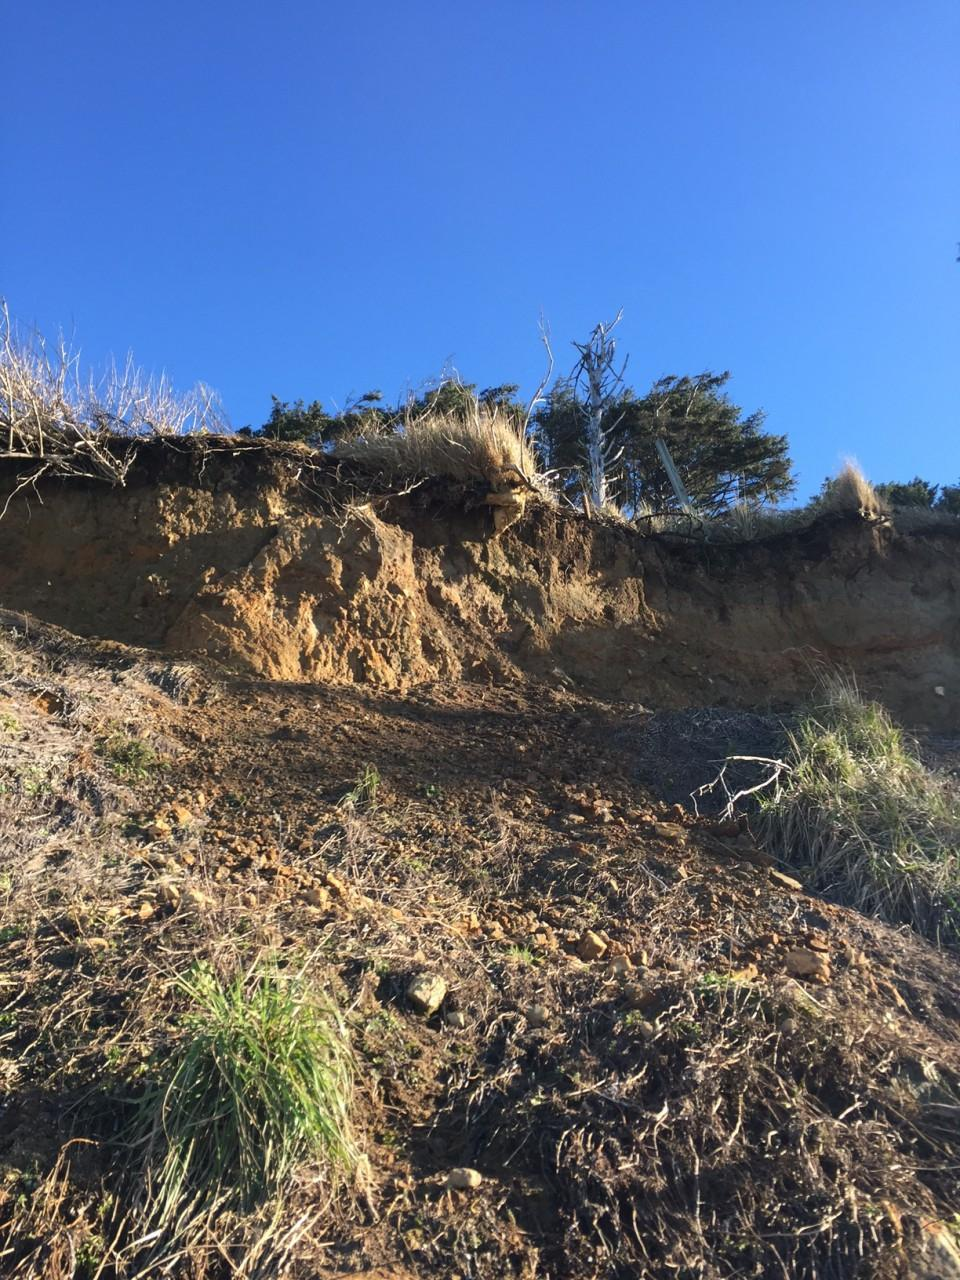 slide between properties of Grewe and Auel about 150 ft wide, exposing roots, vegetation slipped down to the beach.